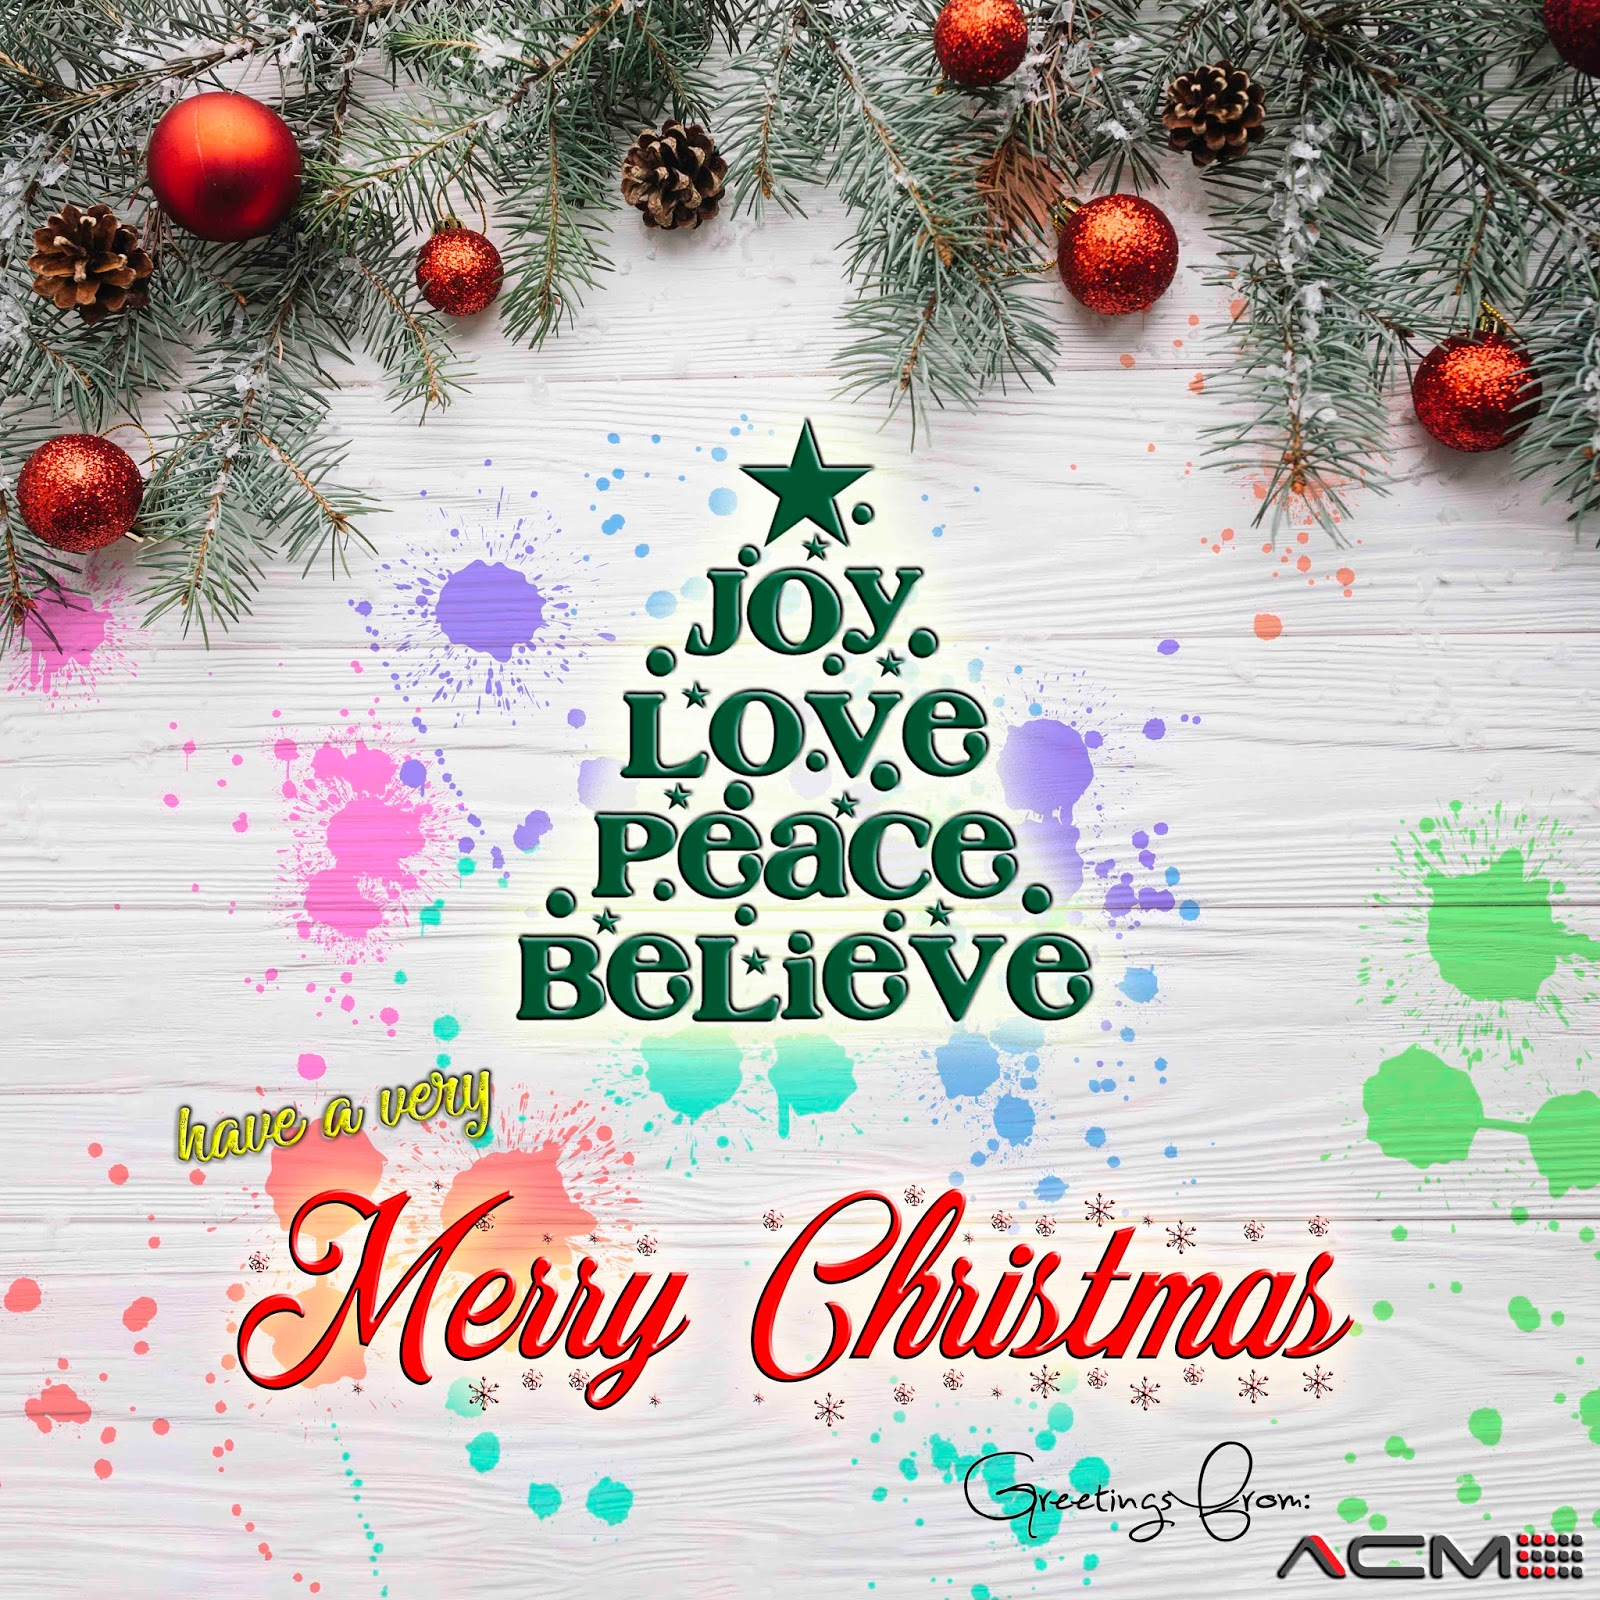 Hadi design studio merry christmas greetings from acme merry christmas greetings from acme engineering consultancy hadi design studio emdad business center m4hsunfo